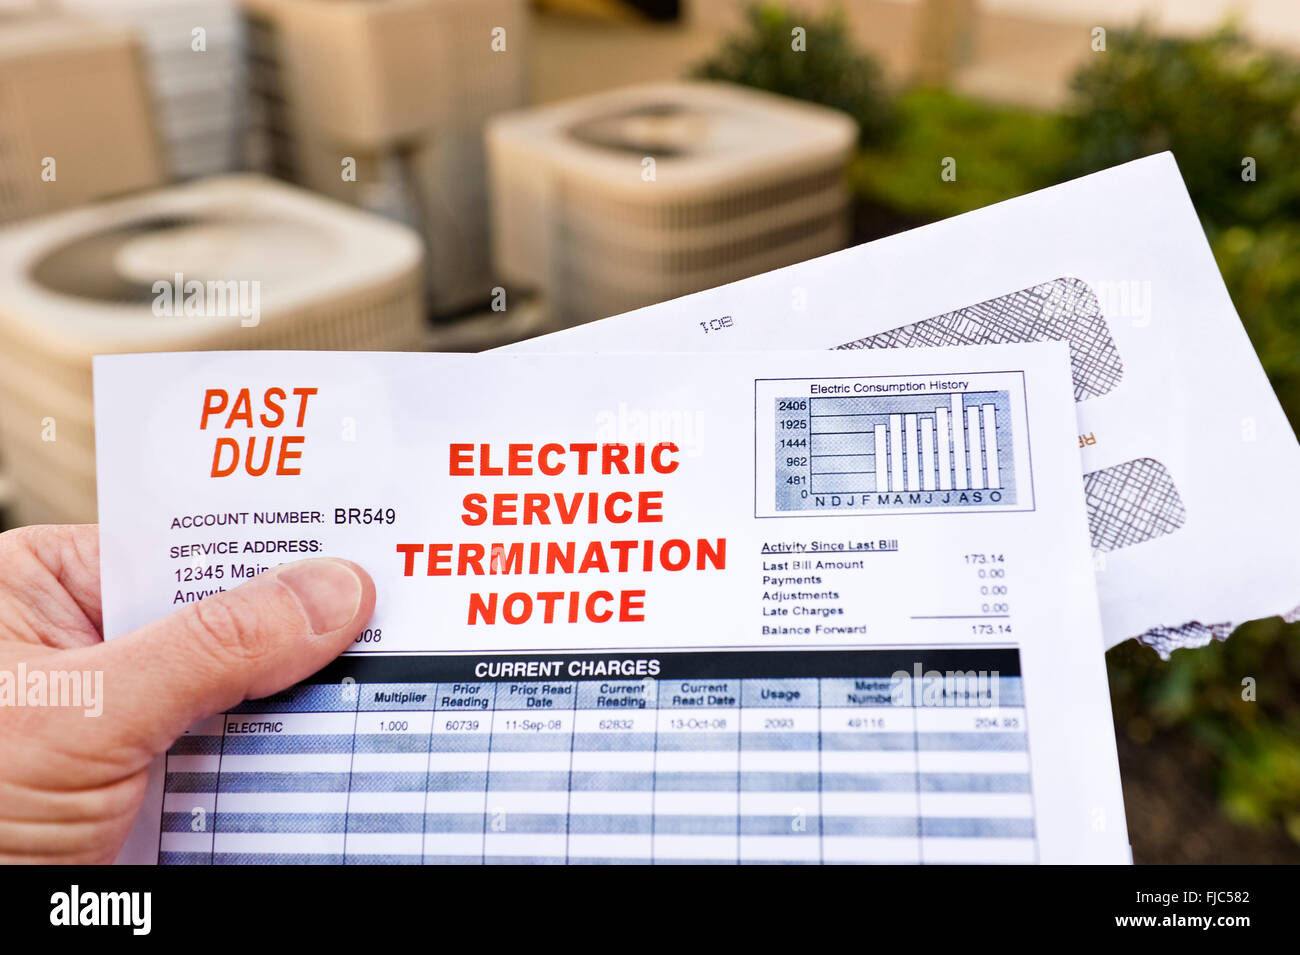 Electric Service Termination Notice - Stock Image